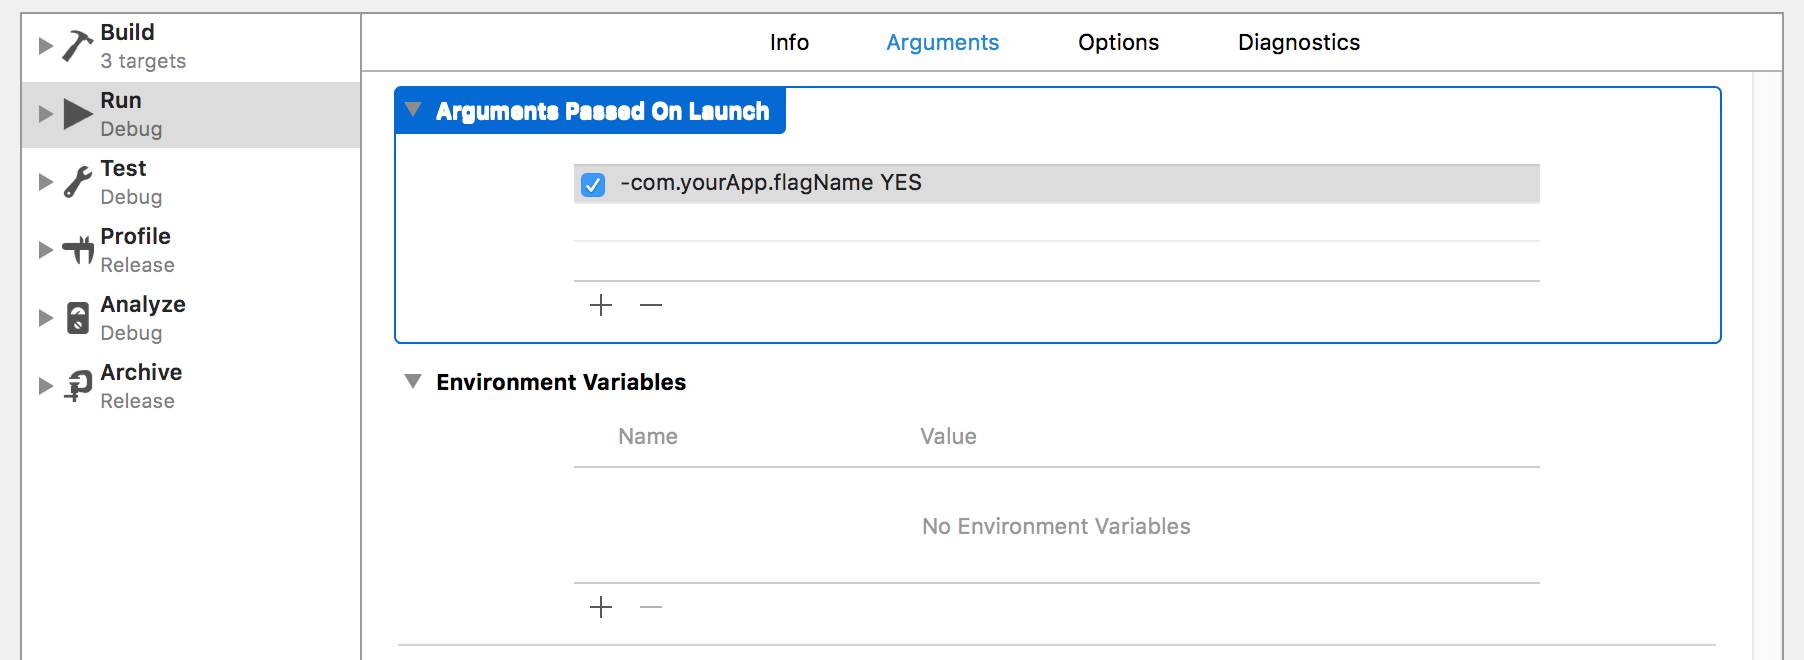 Image of Arguments Passed On Launch in Xcode Scheme Editor